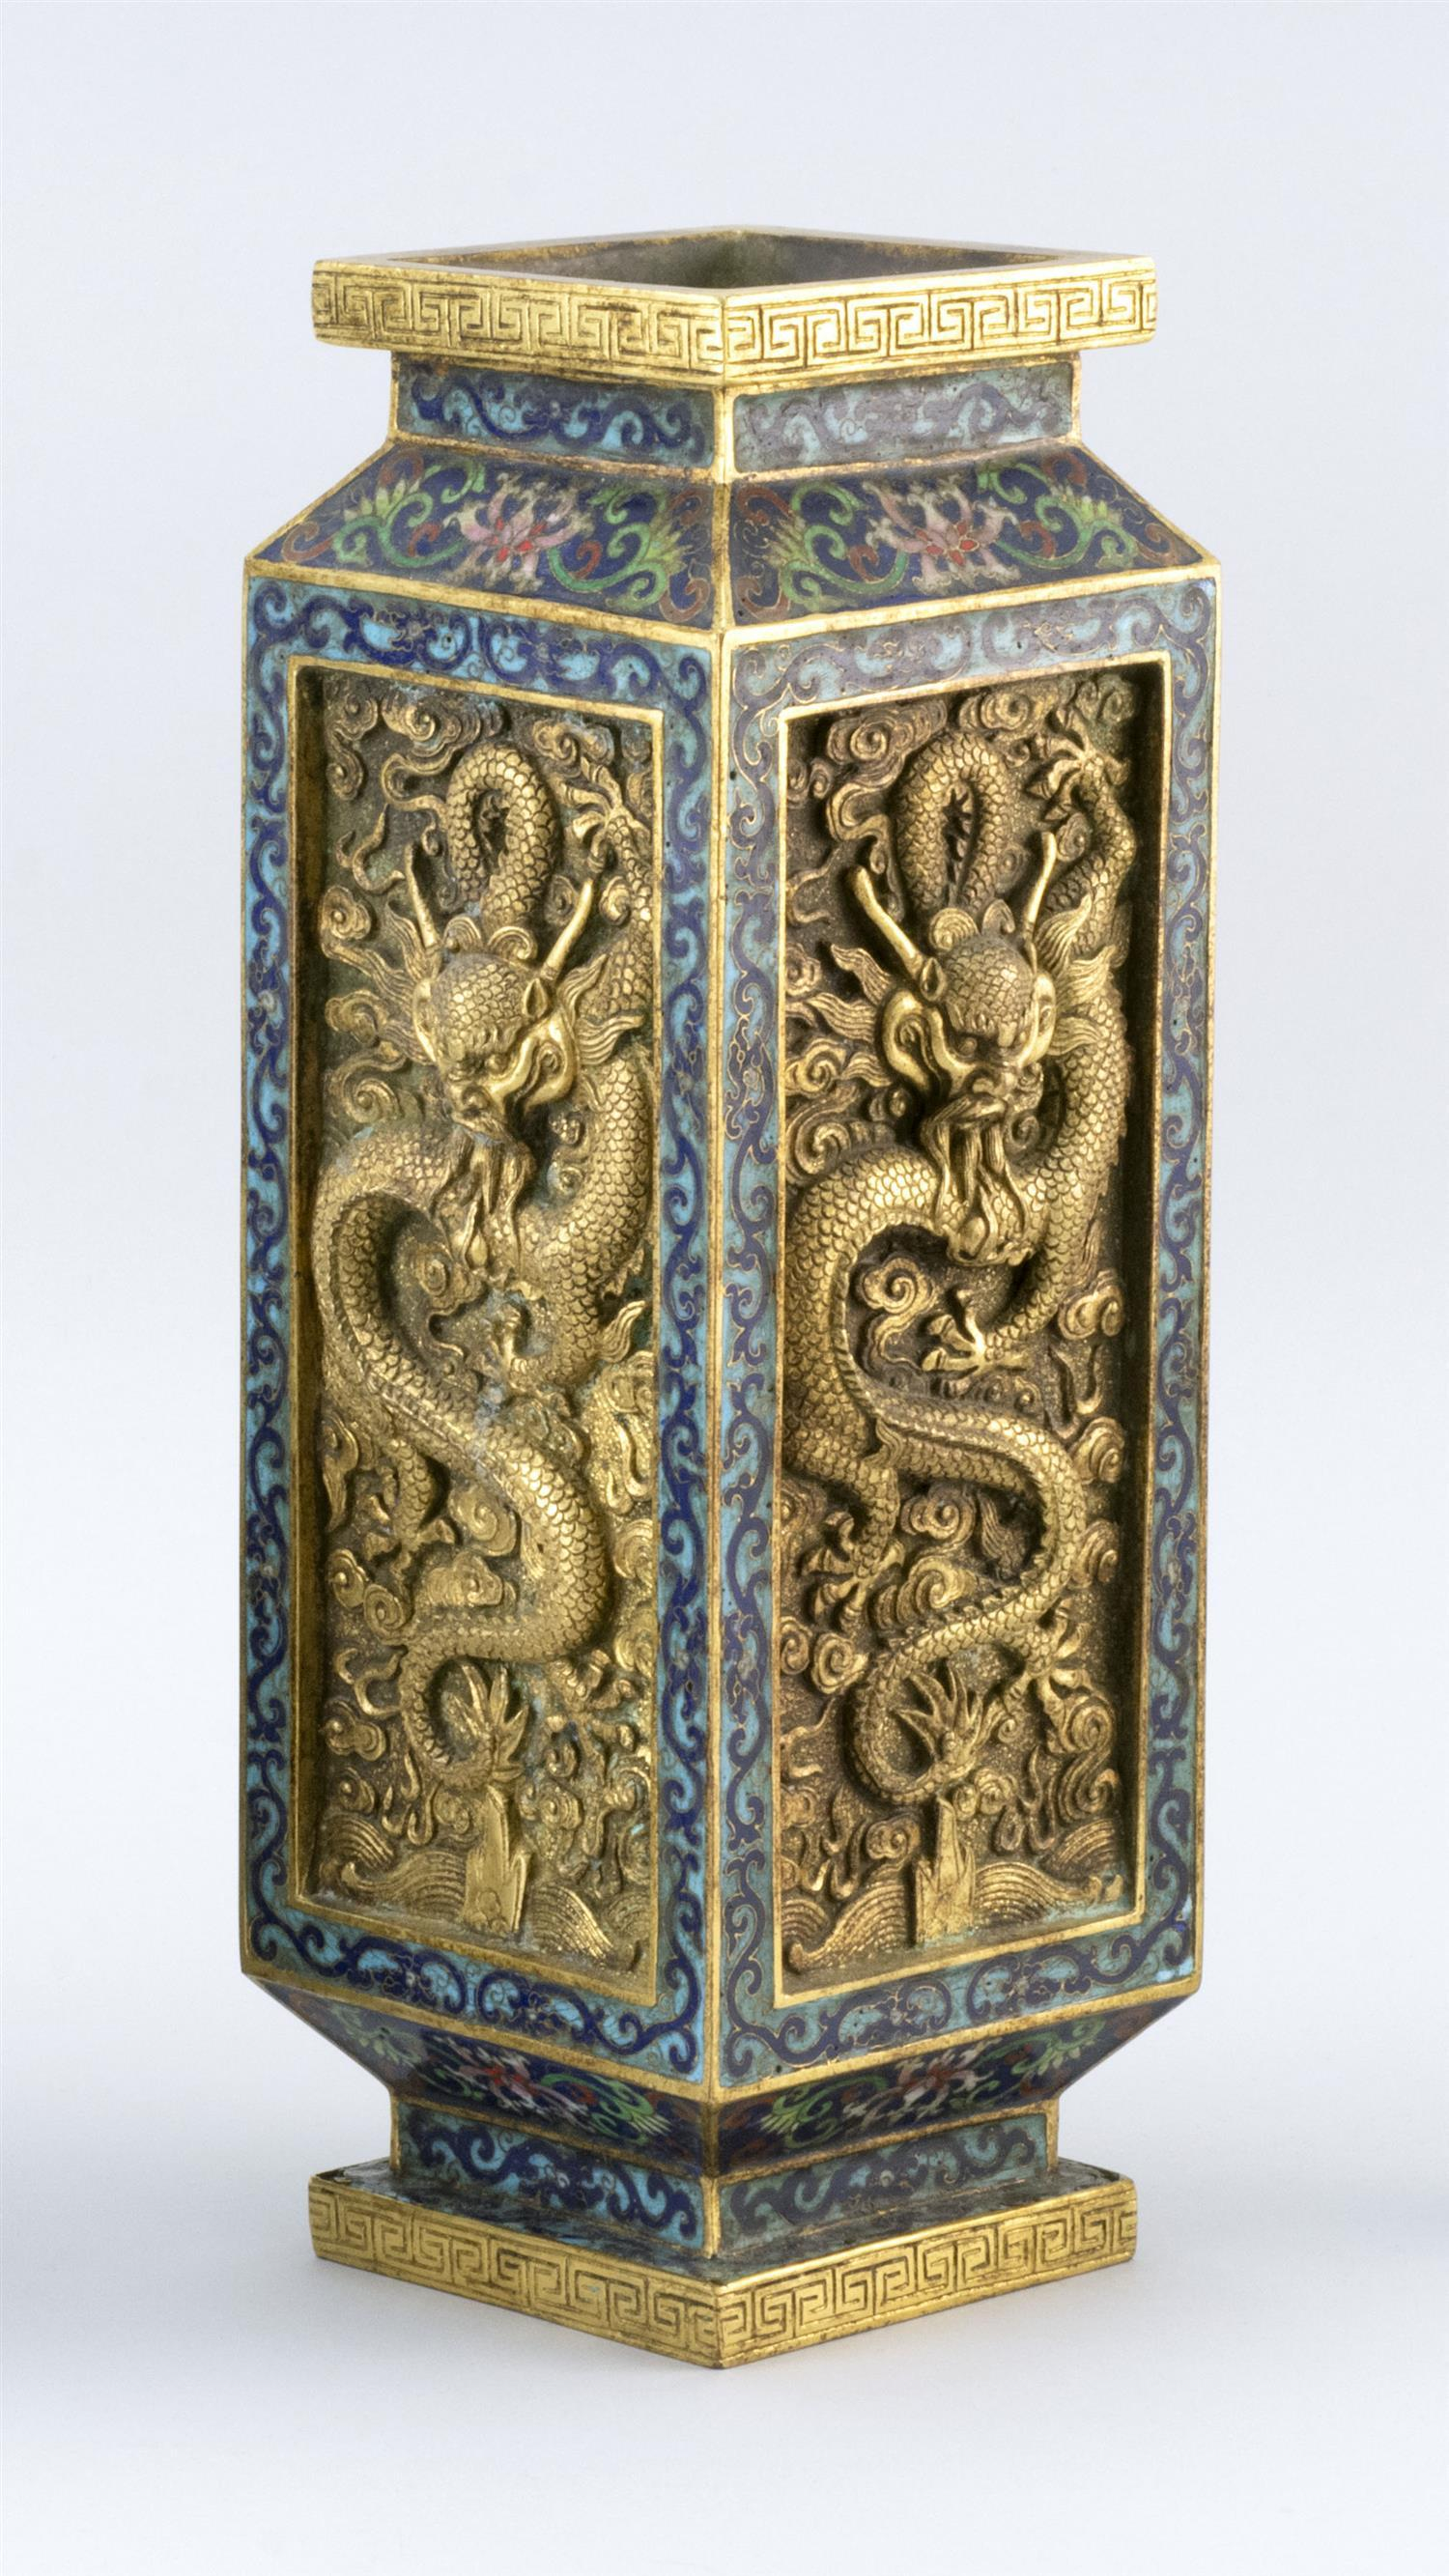 CHINESE GILT-BRONZE AND CLOISONNÉ ENAMEL VASE Rectangular, with gilt five-clawed dragon panels on a blue flower and vine ground. Fou...